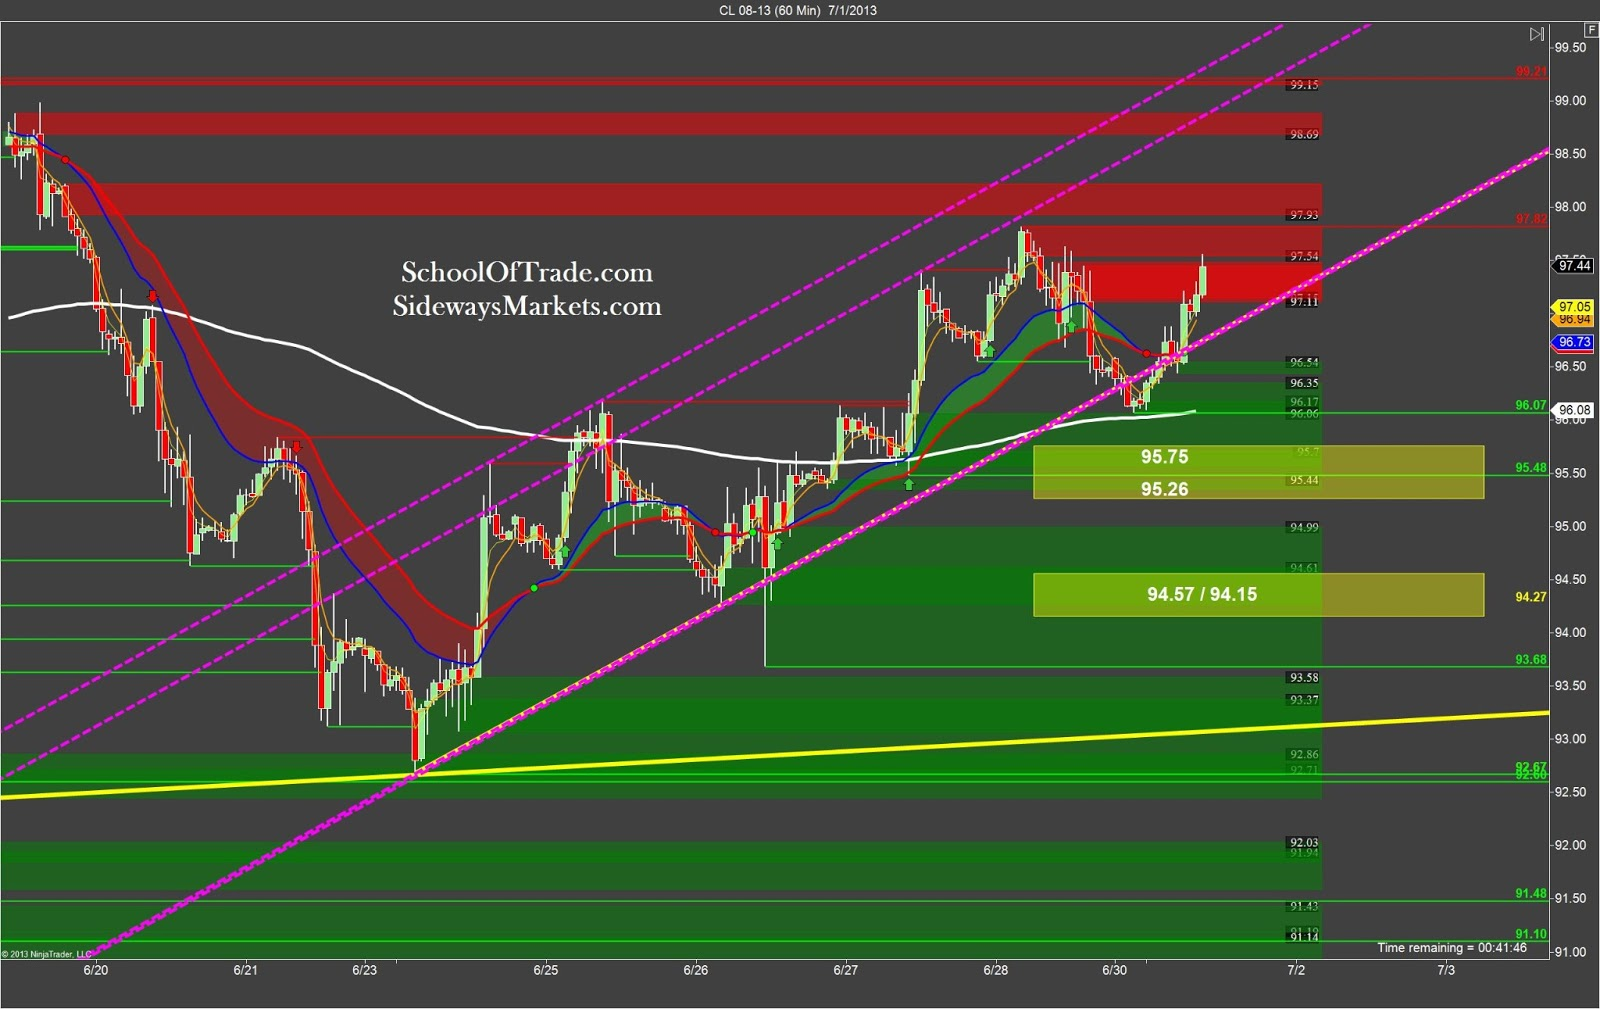 Crude Oil Day trading strategy – Sideways Markets